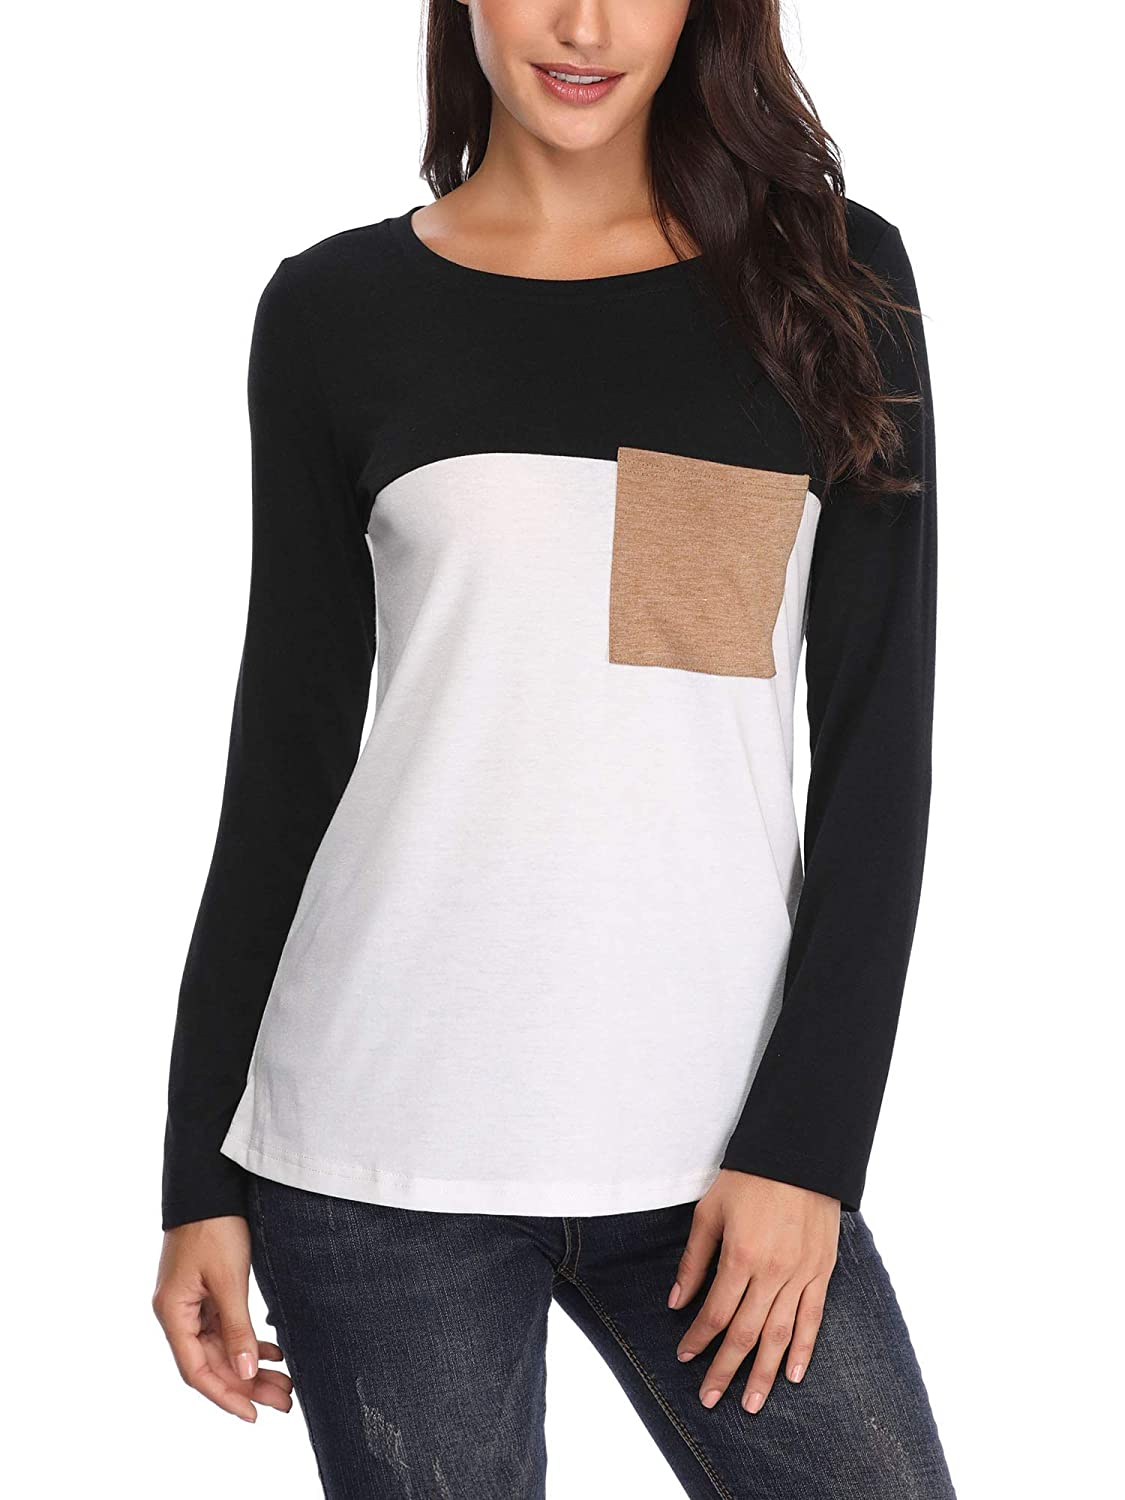 VETIOR Raglan Shirts for Women Women Casual Round Neck color Block Trendy Tee Top Blouse Black